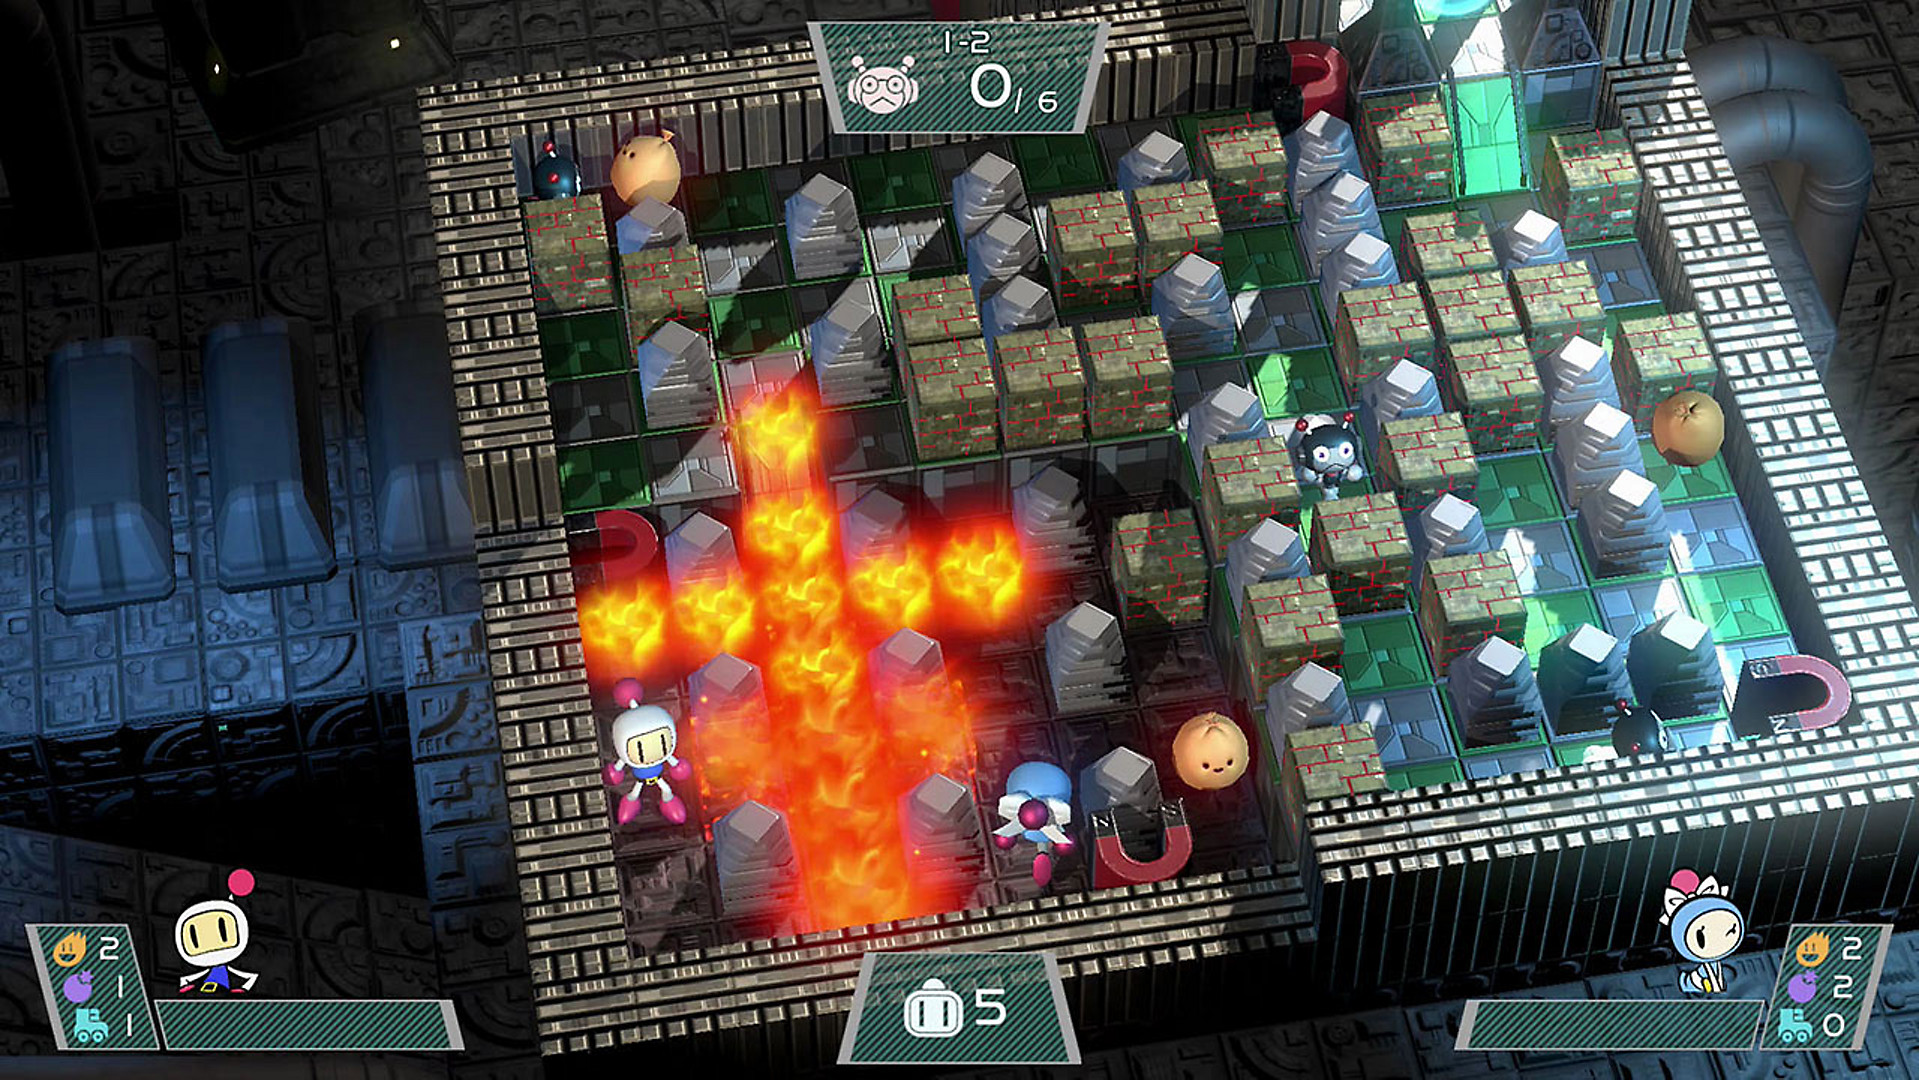 super-bomberman-r-screenshot-04-ps4-us-1